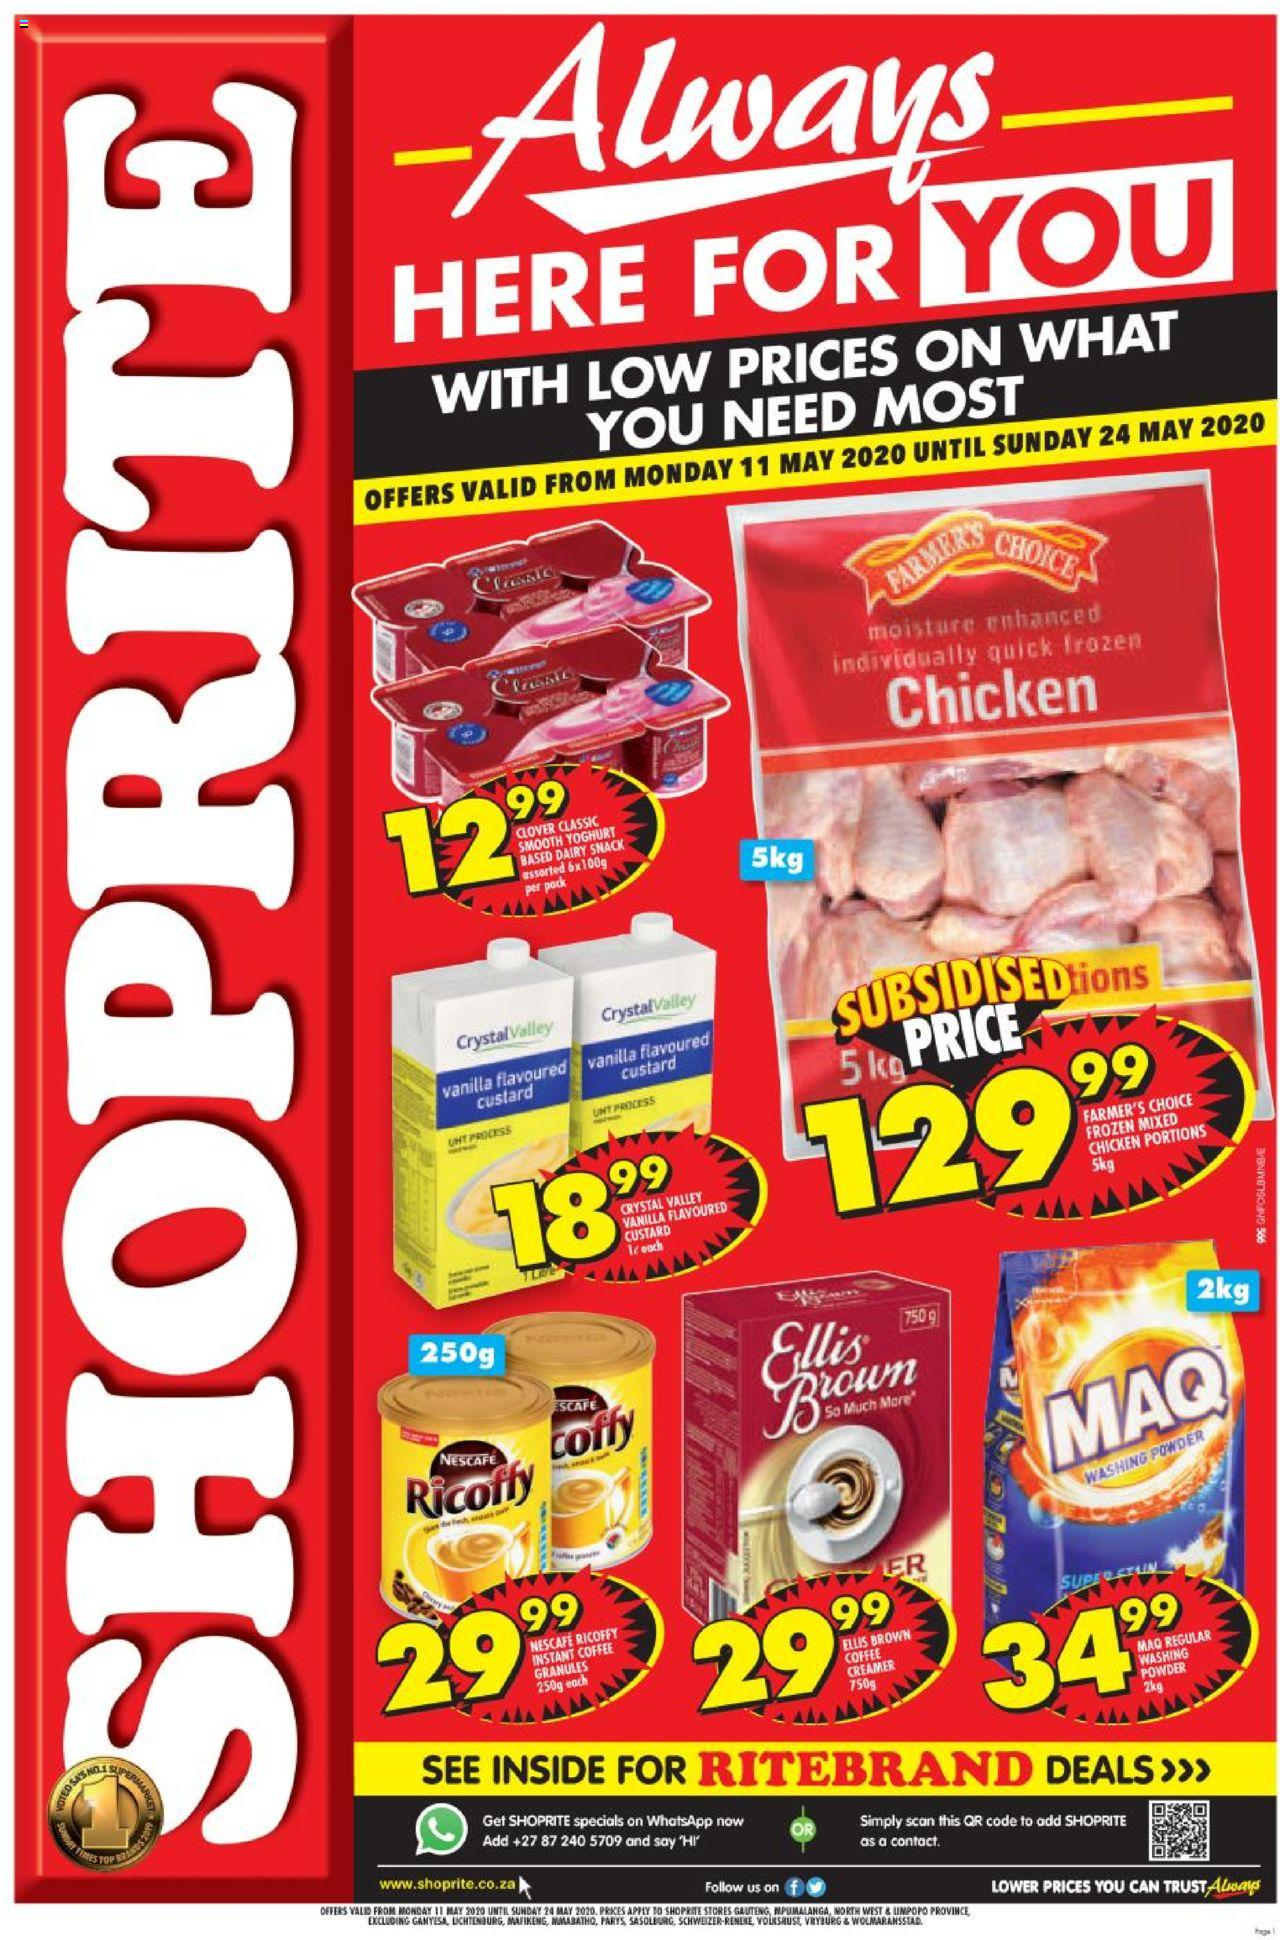 shoprite specials always here for you 11 may 2020